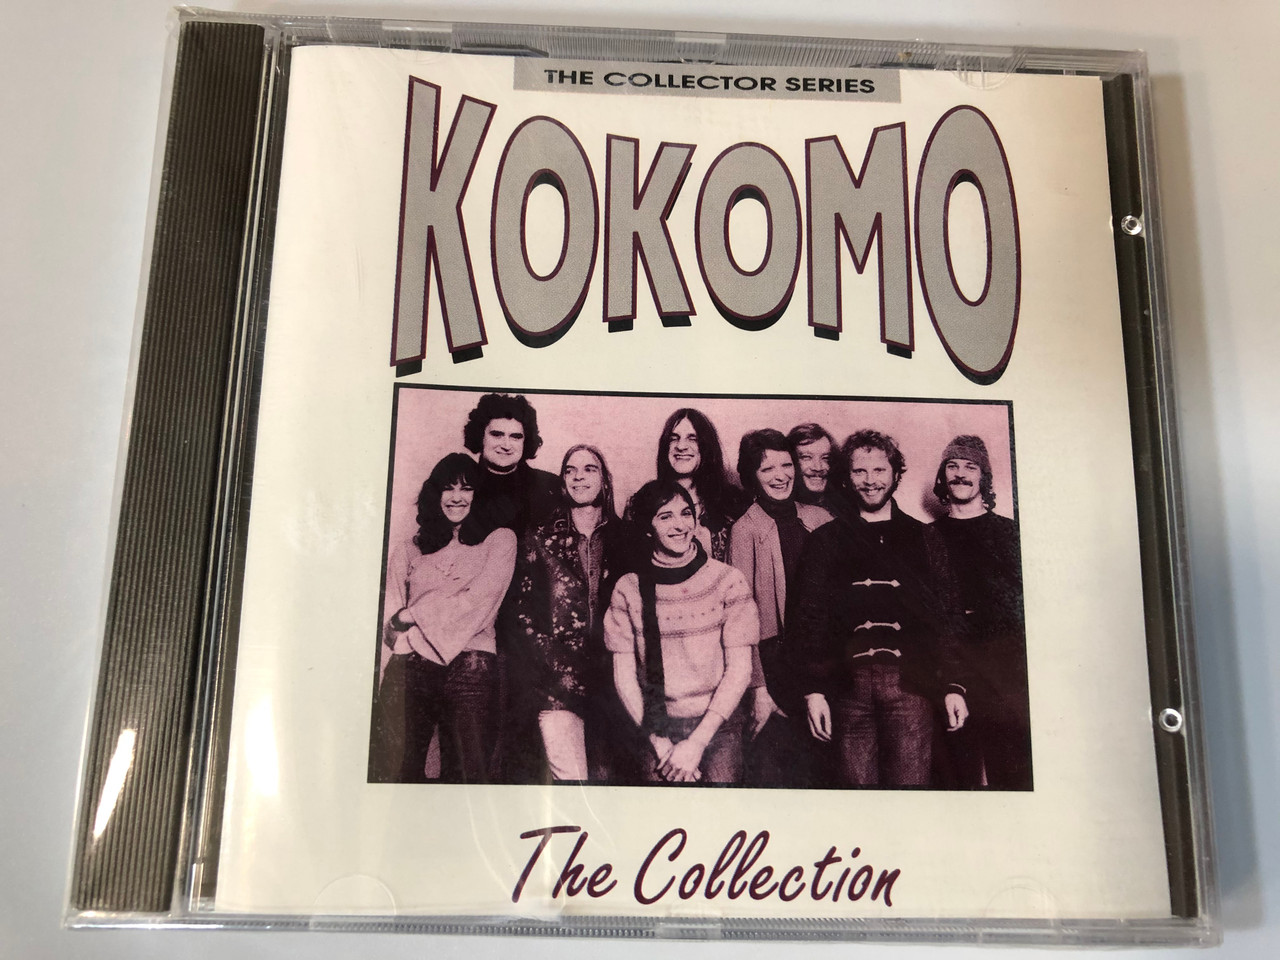 https://cdn10.bigcommerce.com/s-62bdpkt7pb/products/28128/images/168506/The_Collector_Series_-_Kokomo_The_Collection_Castle_Communications_Audio_CD_1991_CCSCD_306_1__96569.1613567193.1280.1280.JPG?c=2&_ga=2.180887075.543434869.1618406858-6505287.1618406858